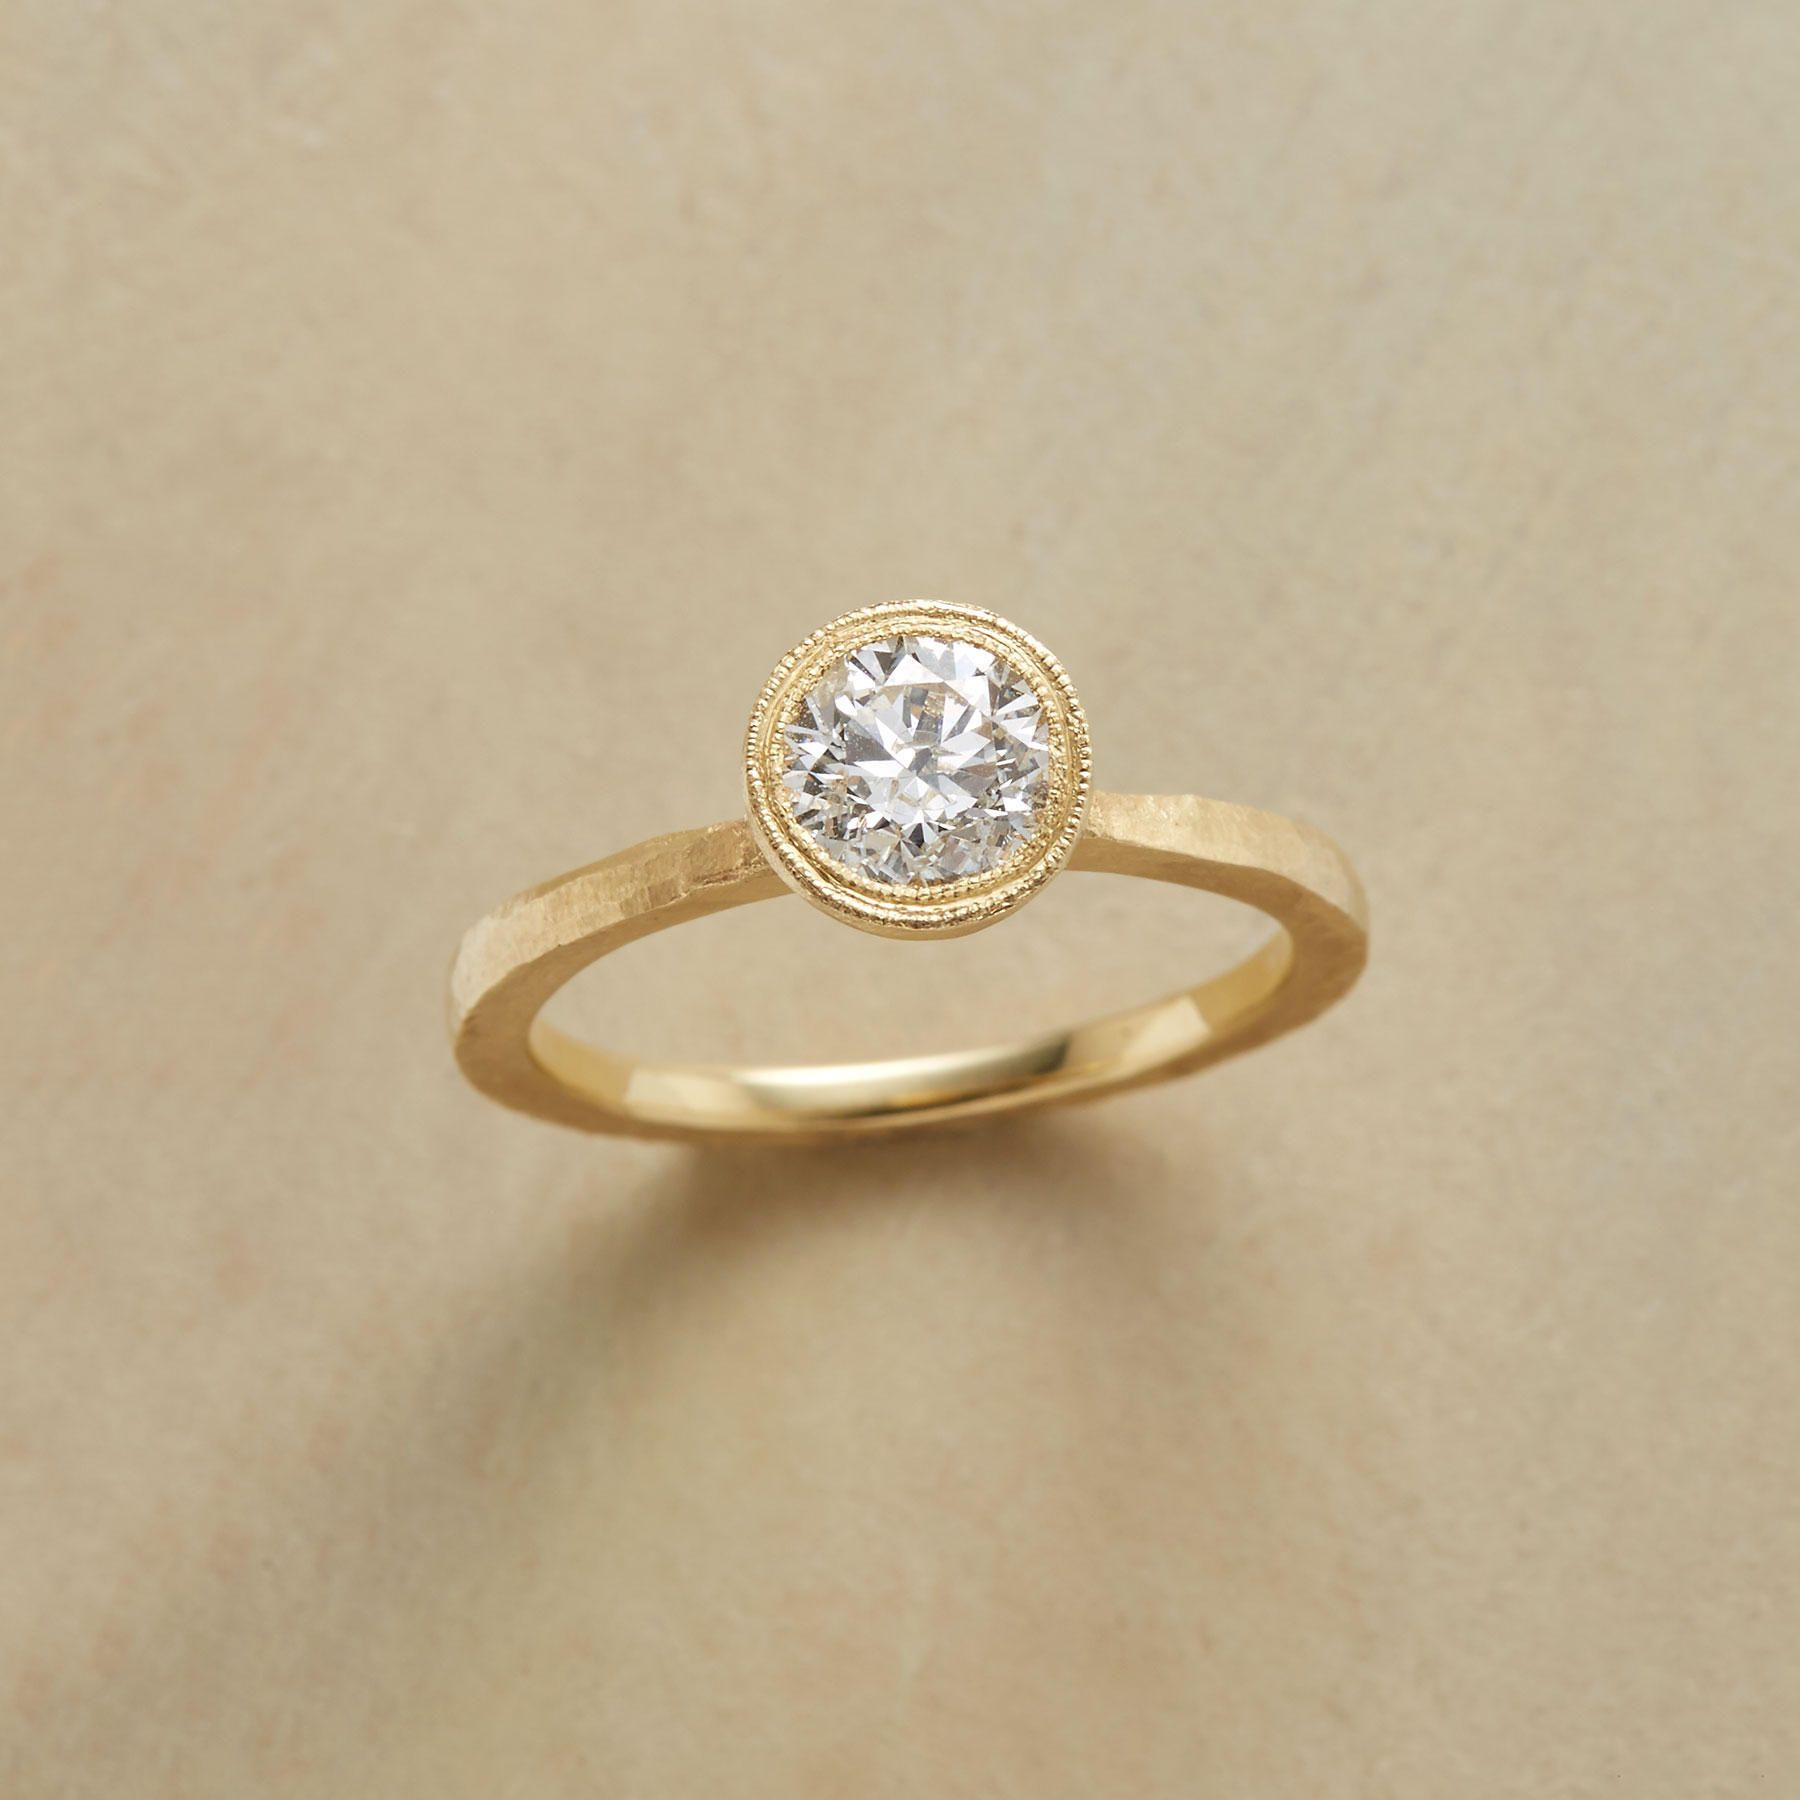 diamant as sterling cut carat synthetic yellow in completely item cushion ring mined anniversary diamond engagement from subtle brilliant gold rings